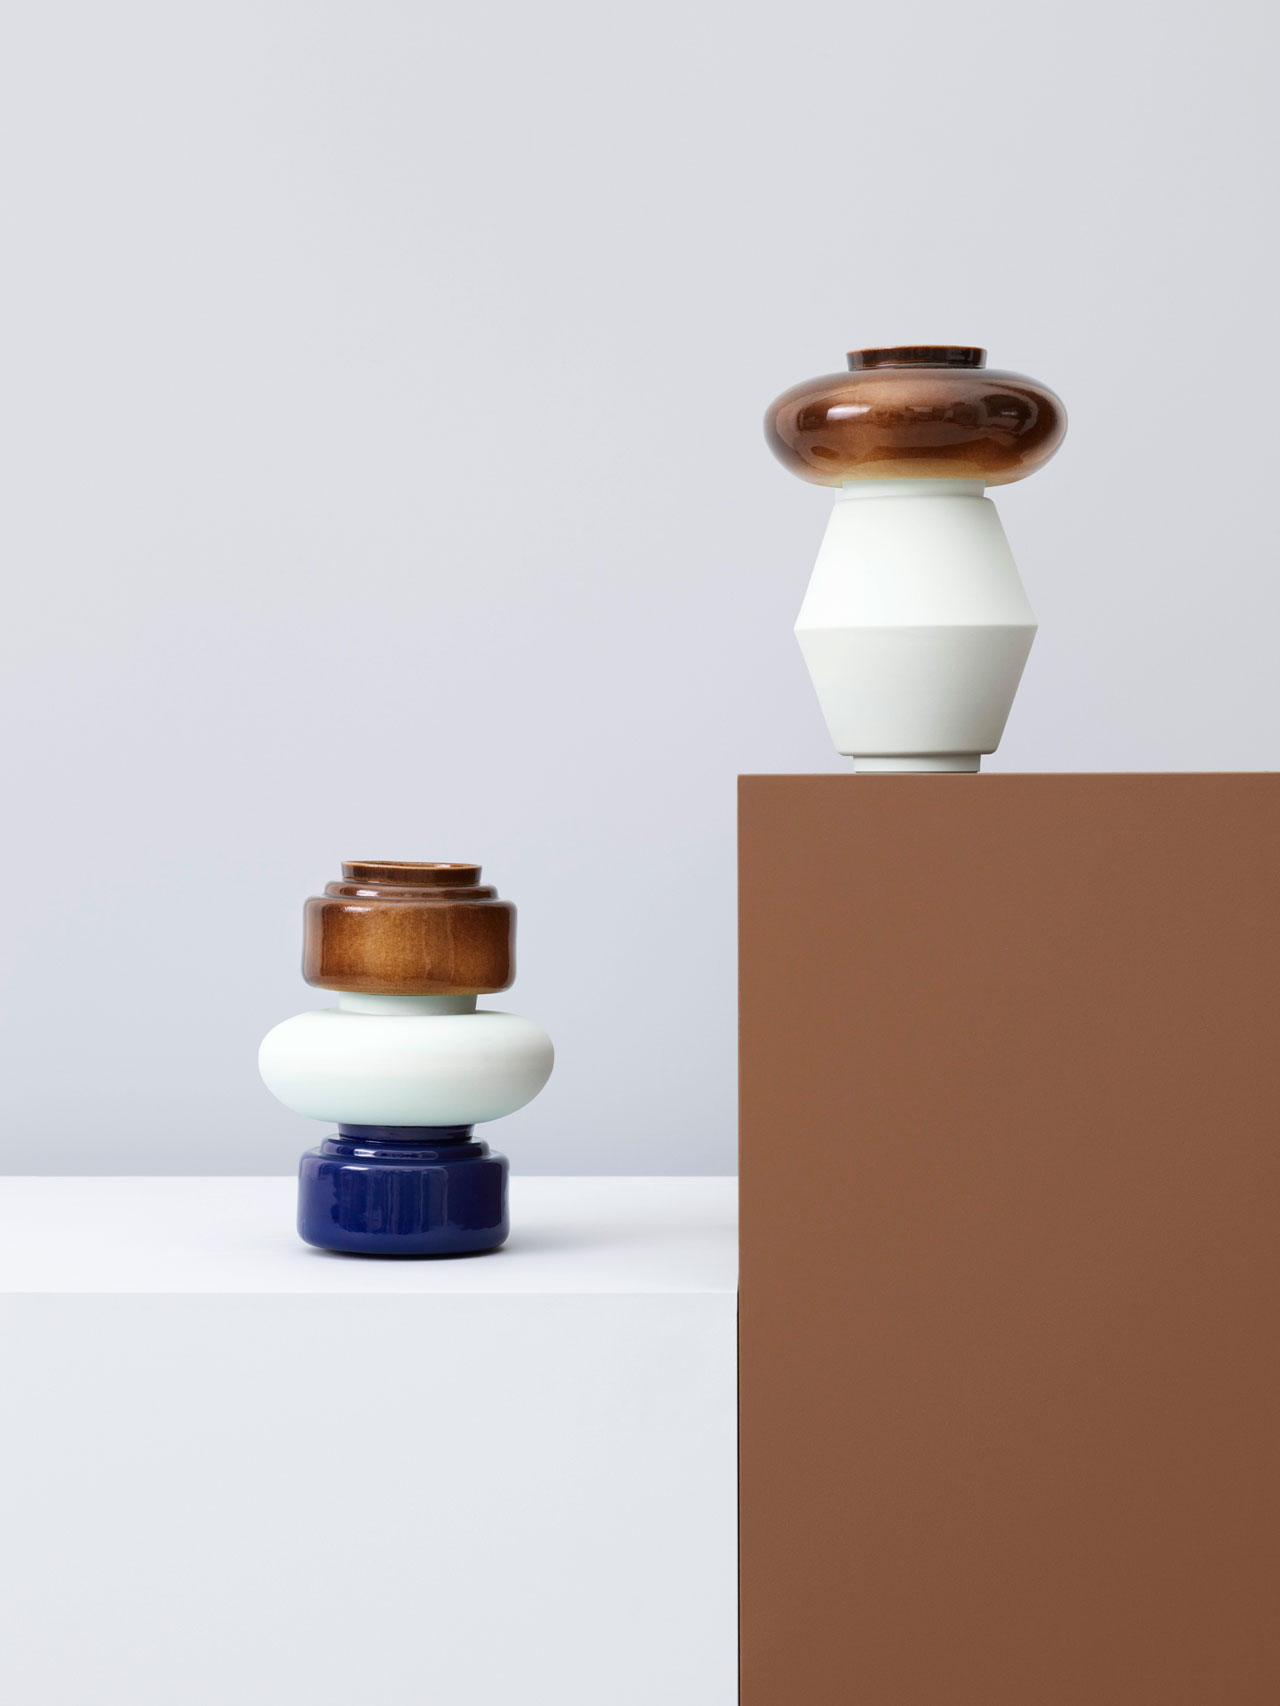 FAM, a series of five handmade slip cast porcelain vases in different shapes and colours byAnn Kristin Einarsen, part of theEverything Is Connected {Norwegian contemporary crafts and design} at Ventura Lambrate. Photo by Lasse Fløde, set-design by Kråkvik&D'Orazio.